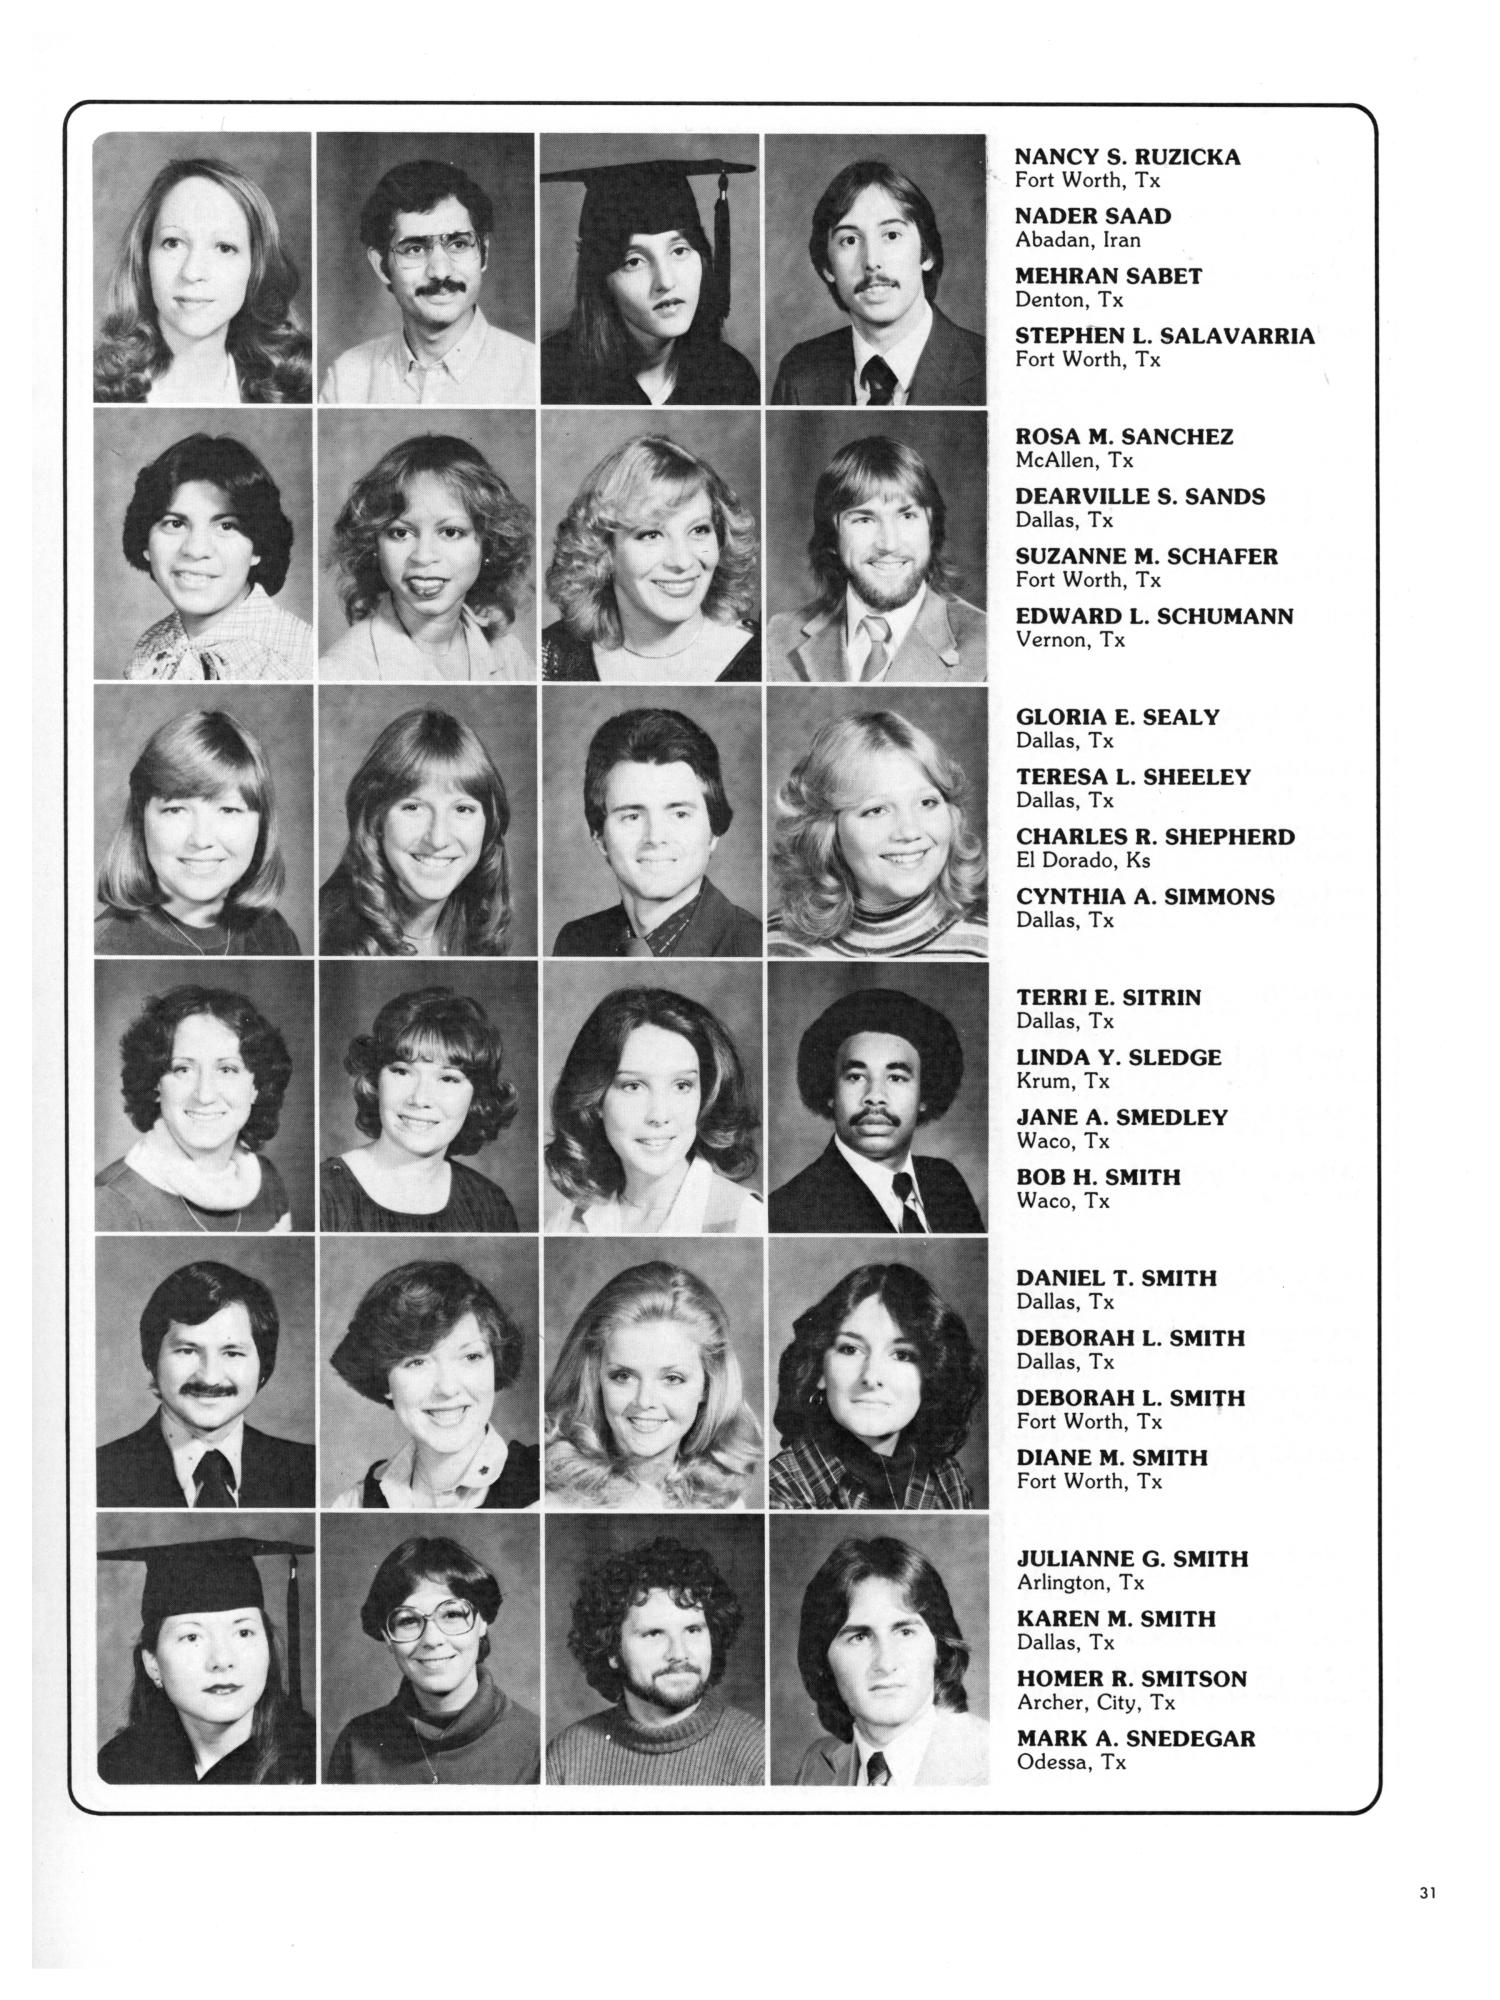 The aerie yearbook of university of north texas 1995 page 44 unt - Wings Yearbook Of North Texas State University 1980 Page 31 Digital Library